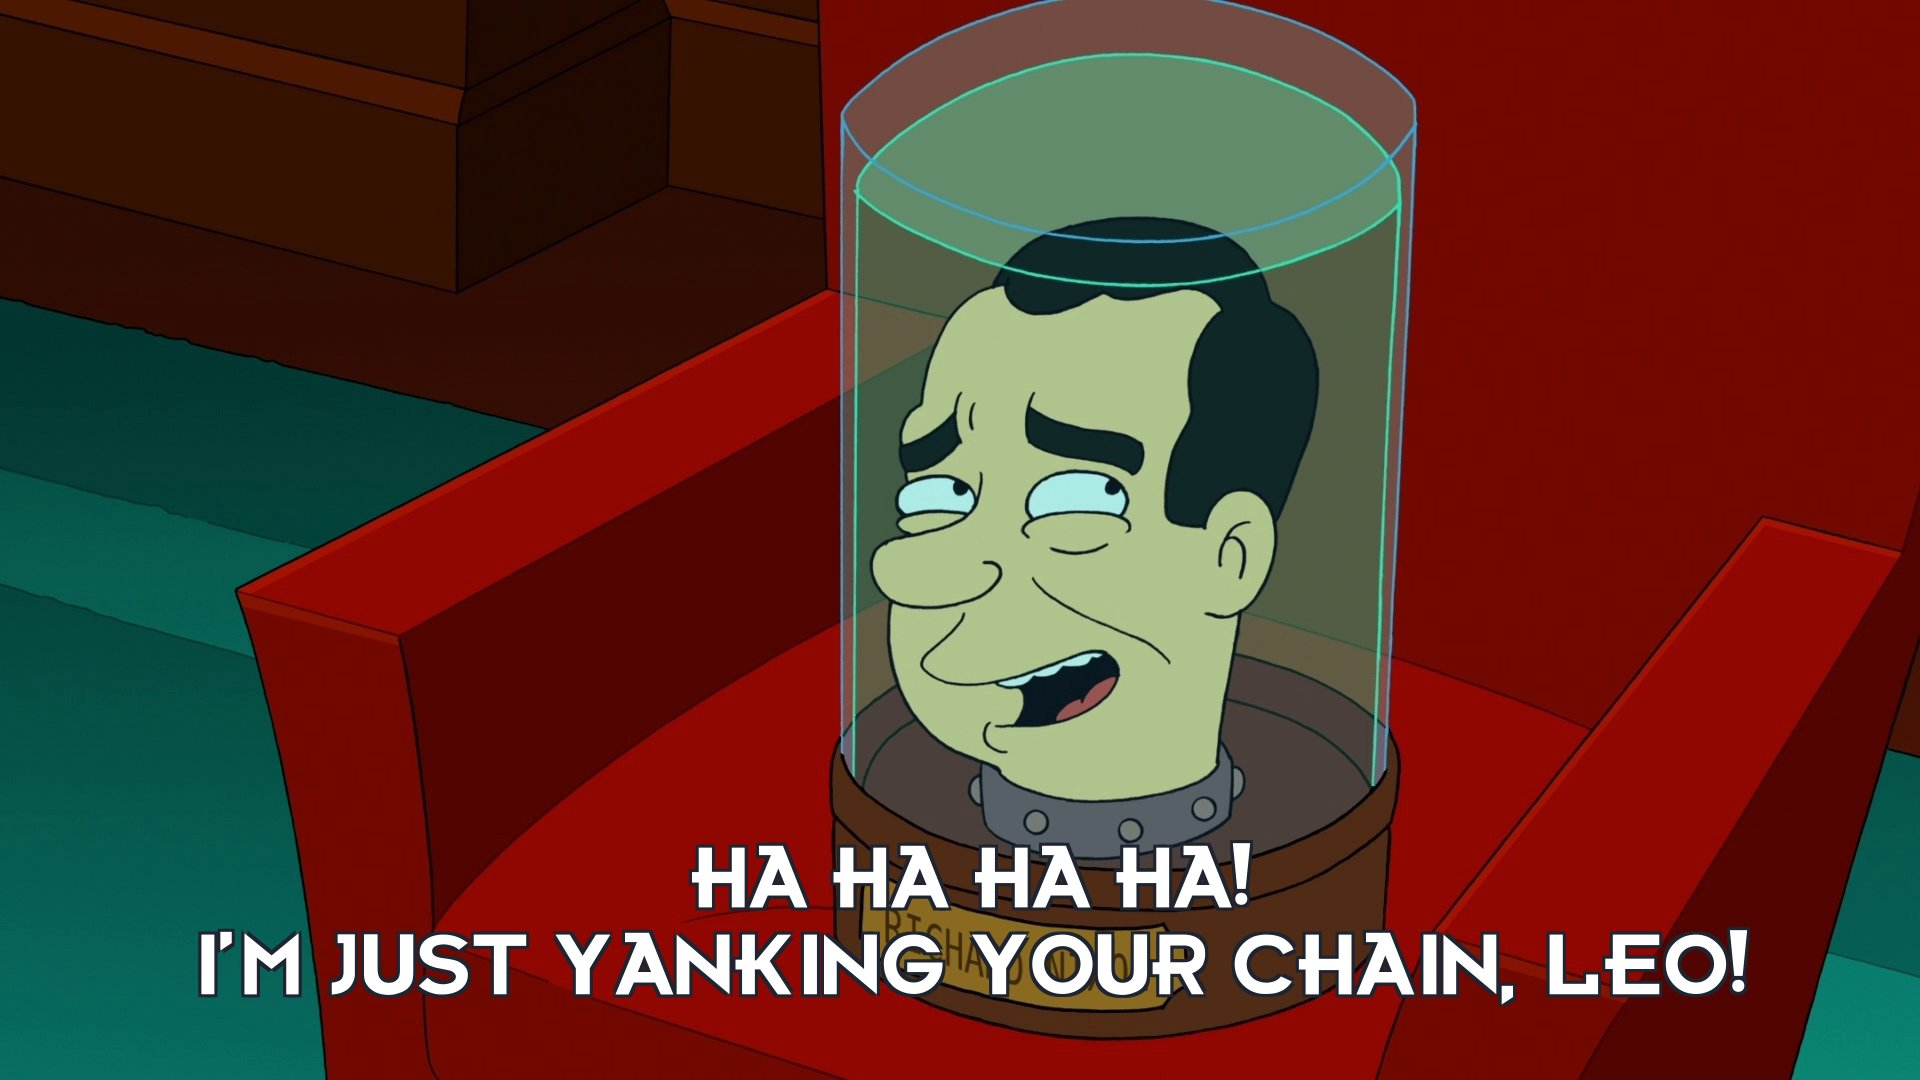 Richard M Nixon's head: Ha ha ha ha! I'm just yanking your chain, Leo!